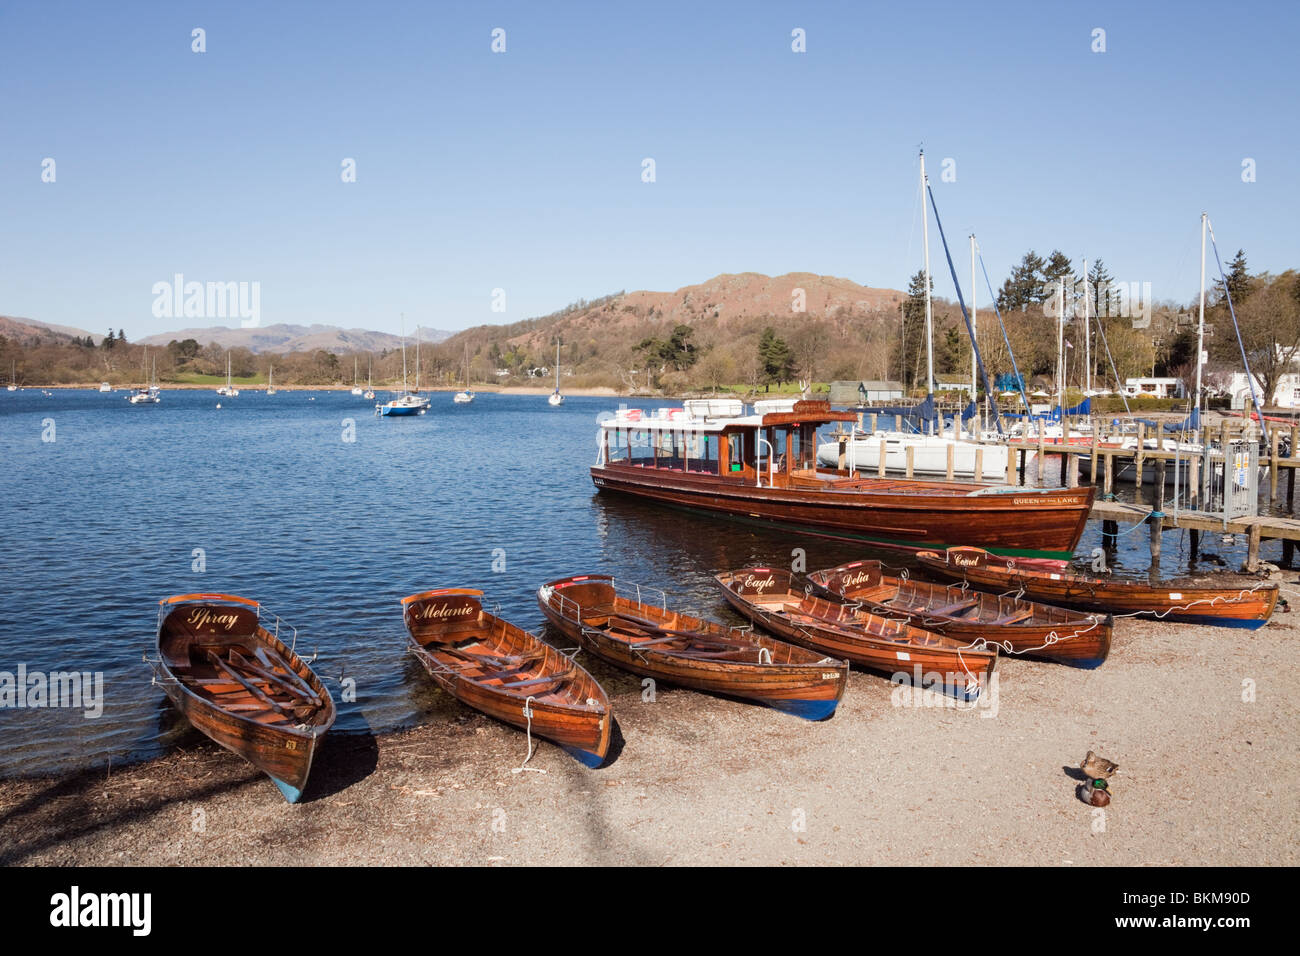 Waterhead, Ambleside, Cumbria, England, UK. Rowing boats for hire on Lake Windermere lakeside in the Lake District - Stock Image